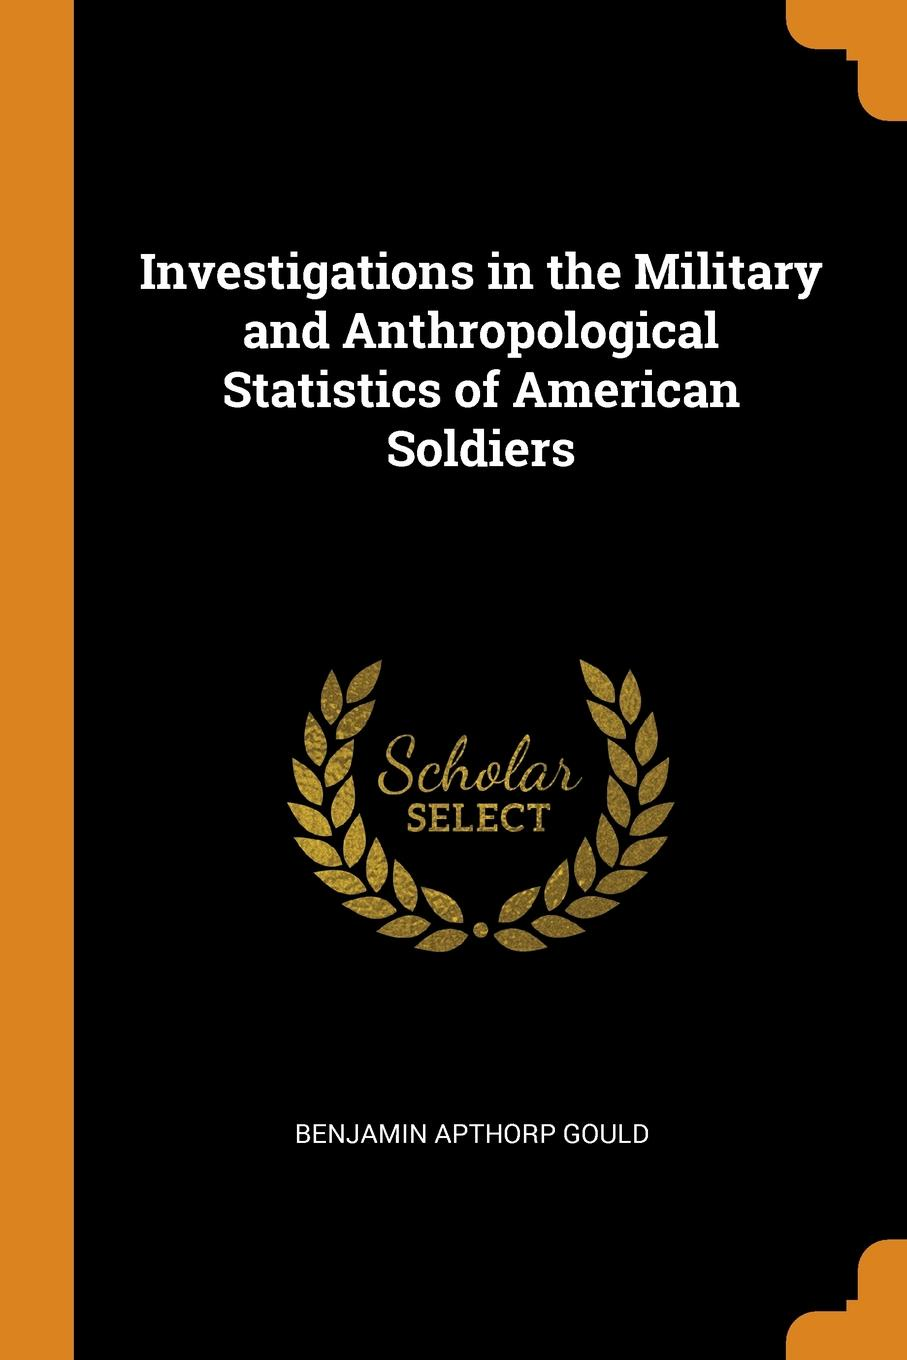 Investigations in the Military and Anthropological Statistics of American Soldiers